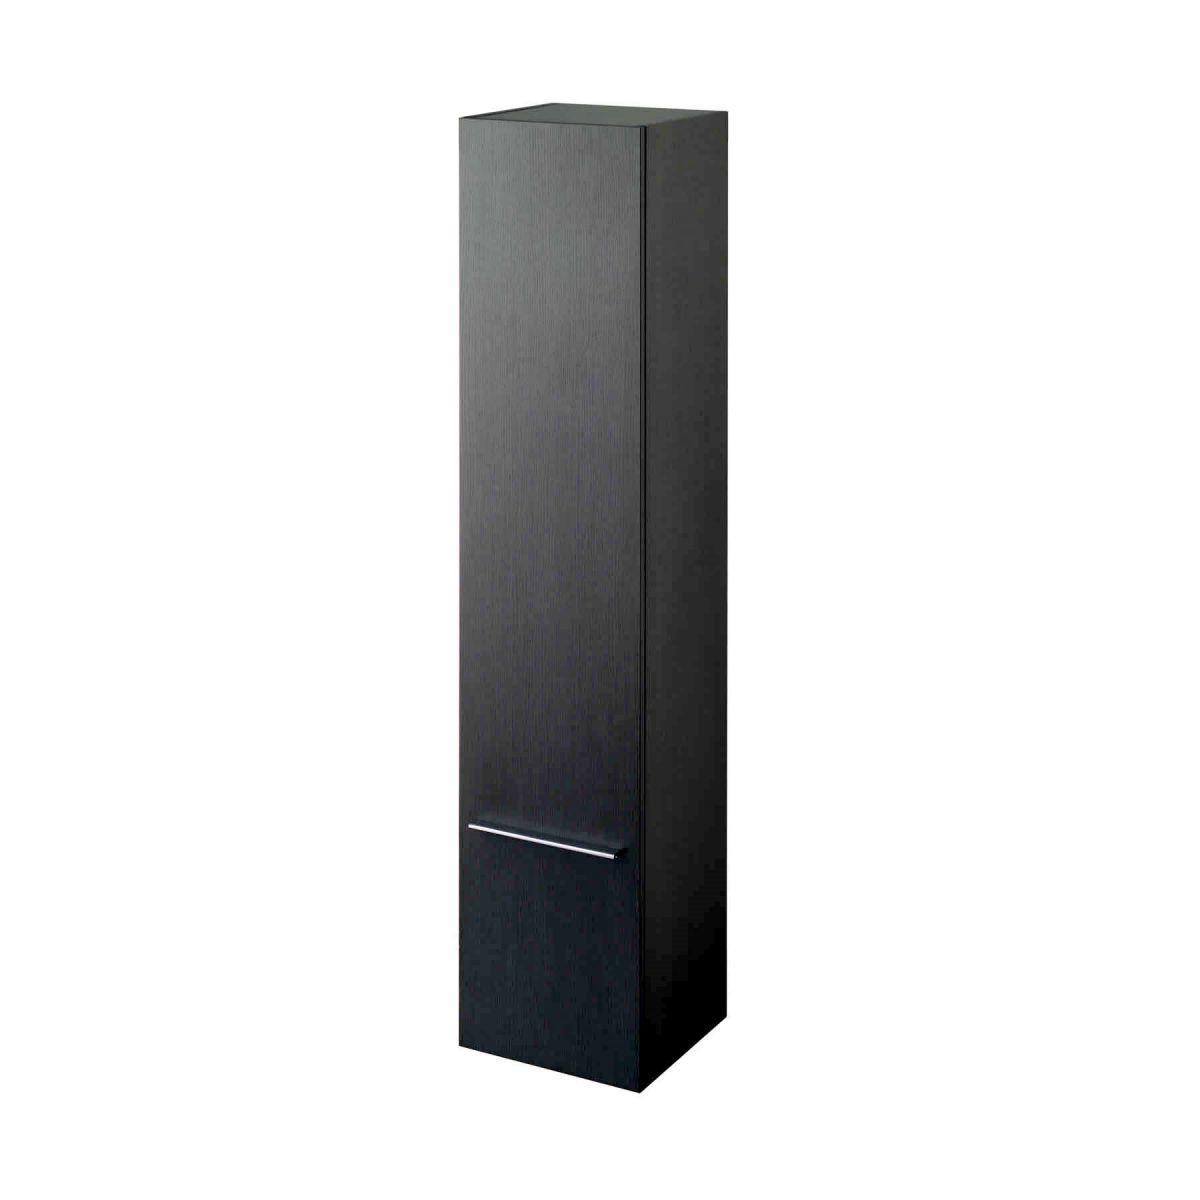 ideal standard daylight tall storage cabinet uk bathrooms